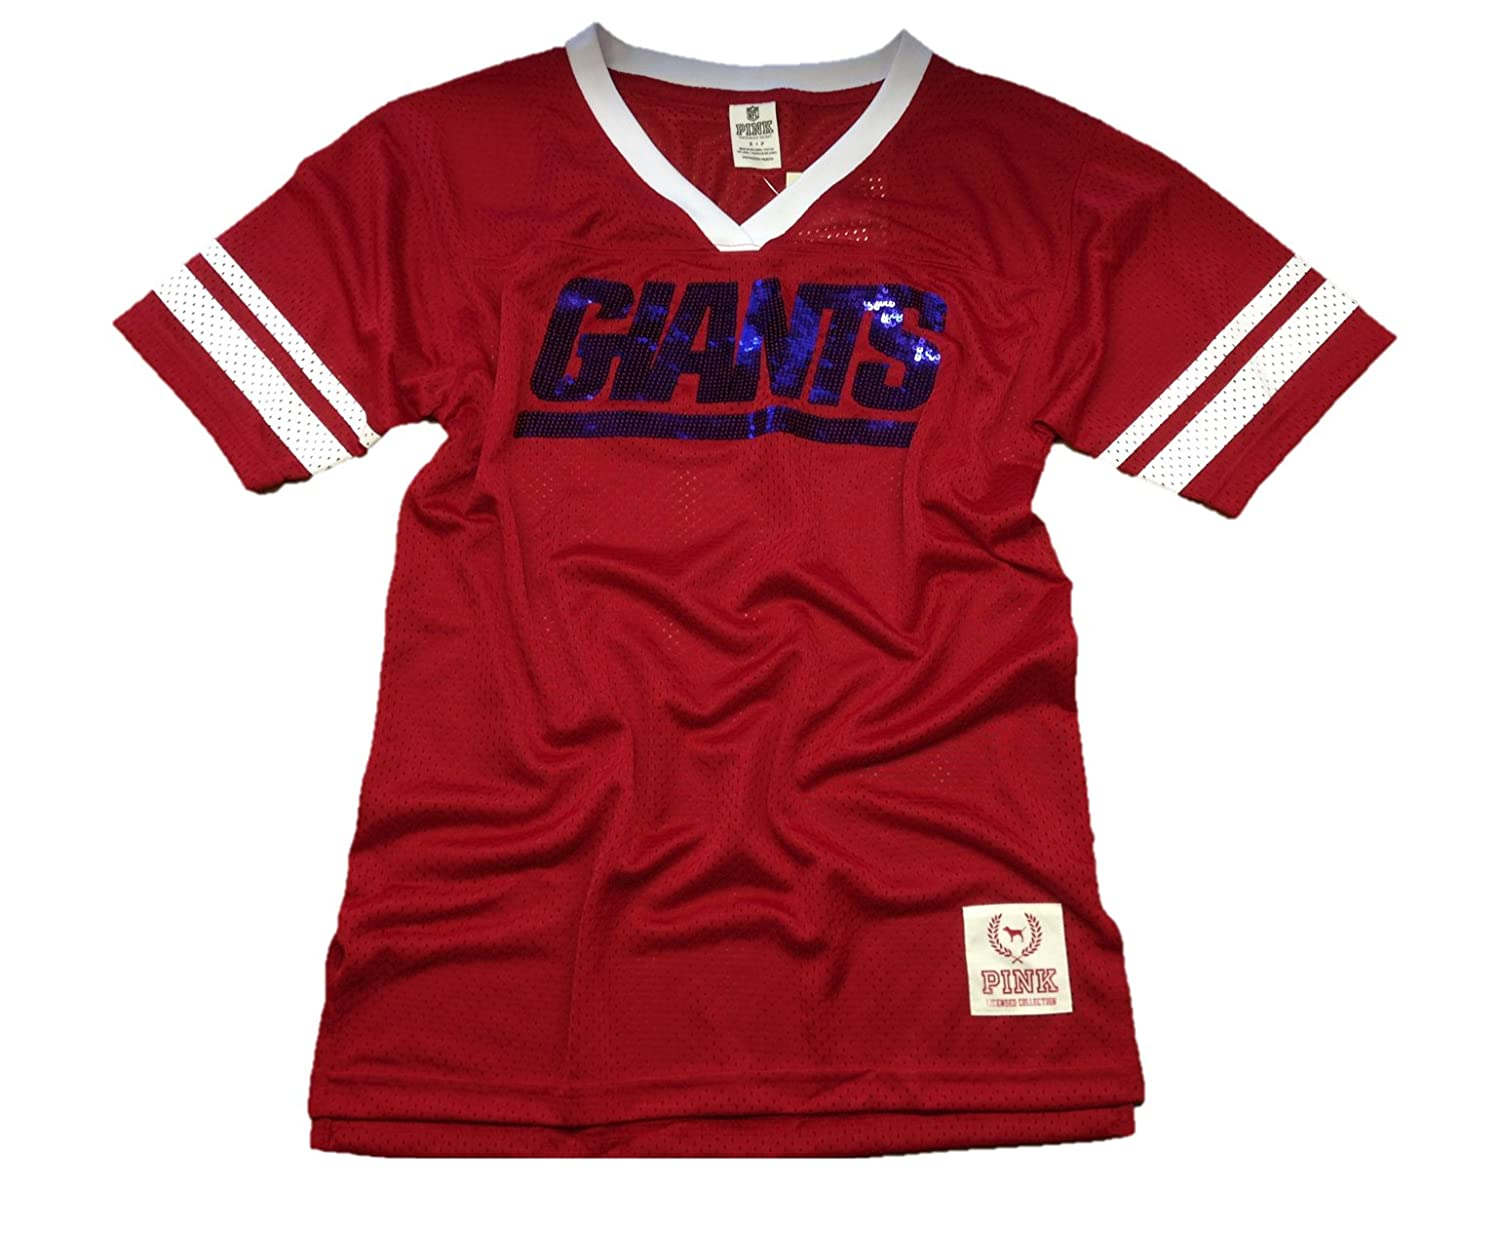 detailed look 64a30 db7f1 Victoria's Secret PINK New York Giants Bling Jersey T-shirt ...